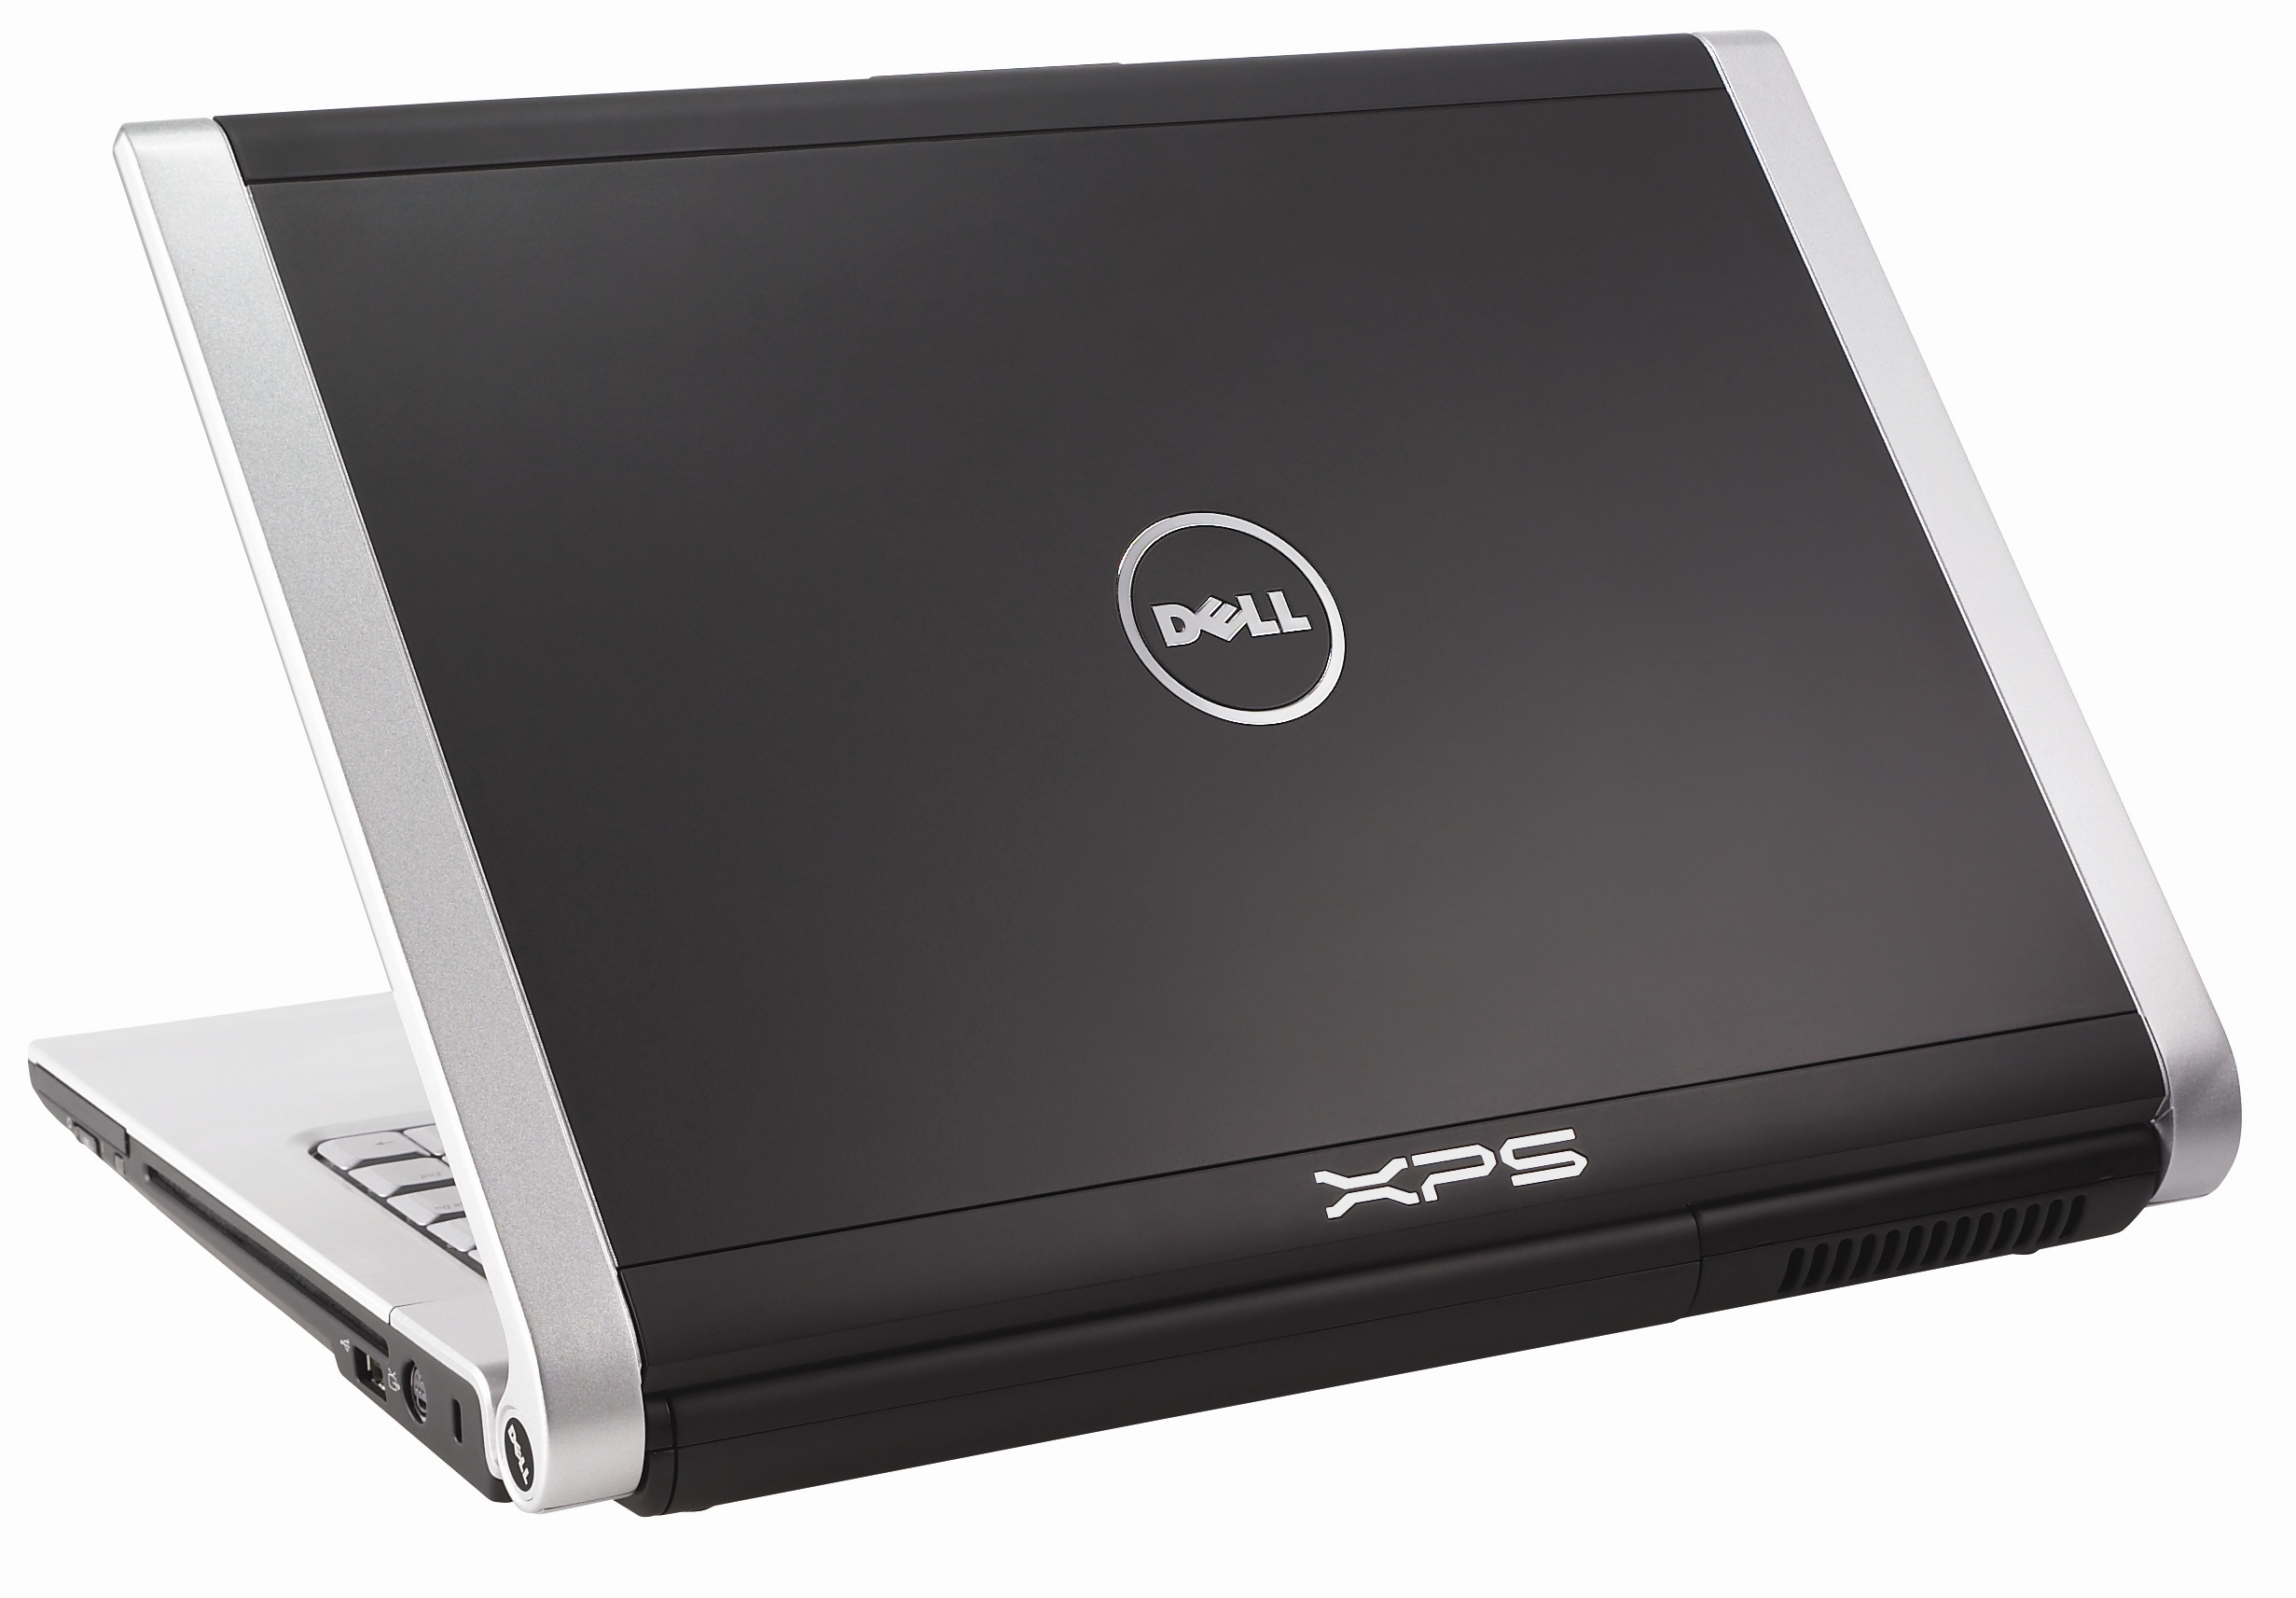 New Dell Laptop